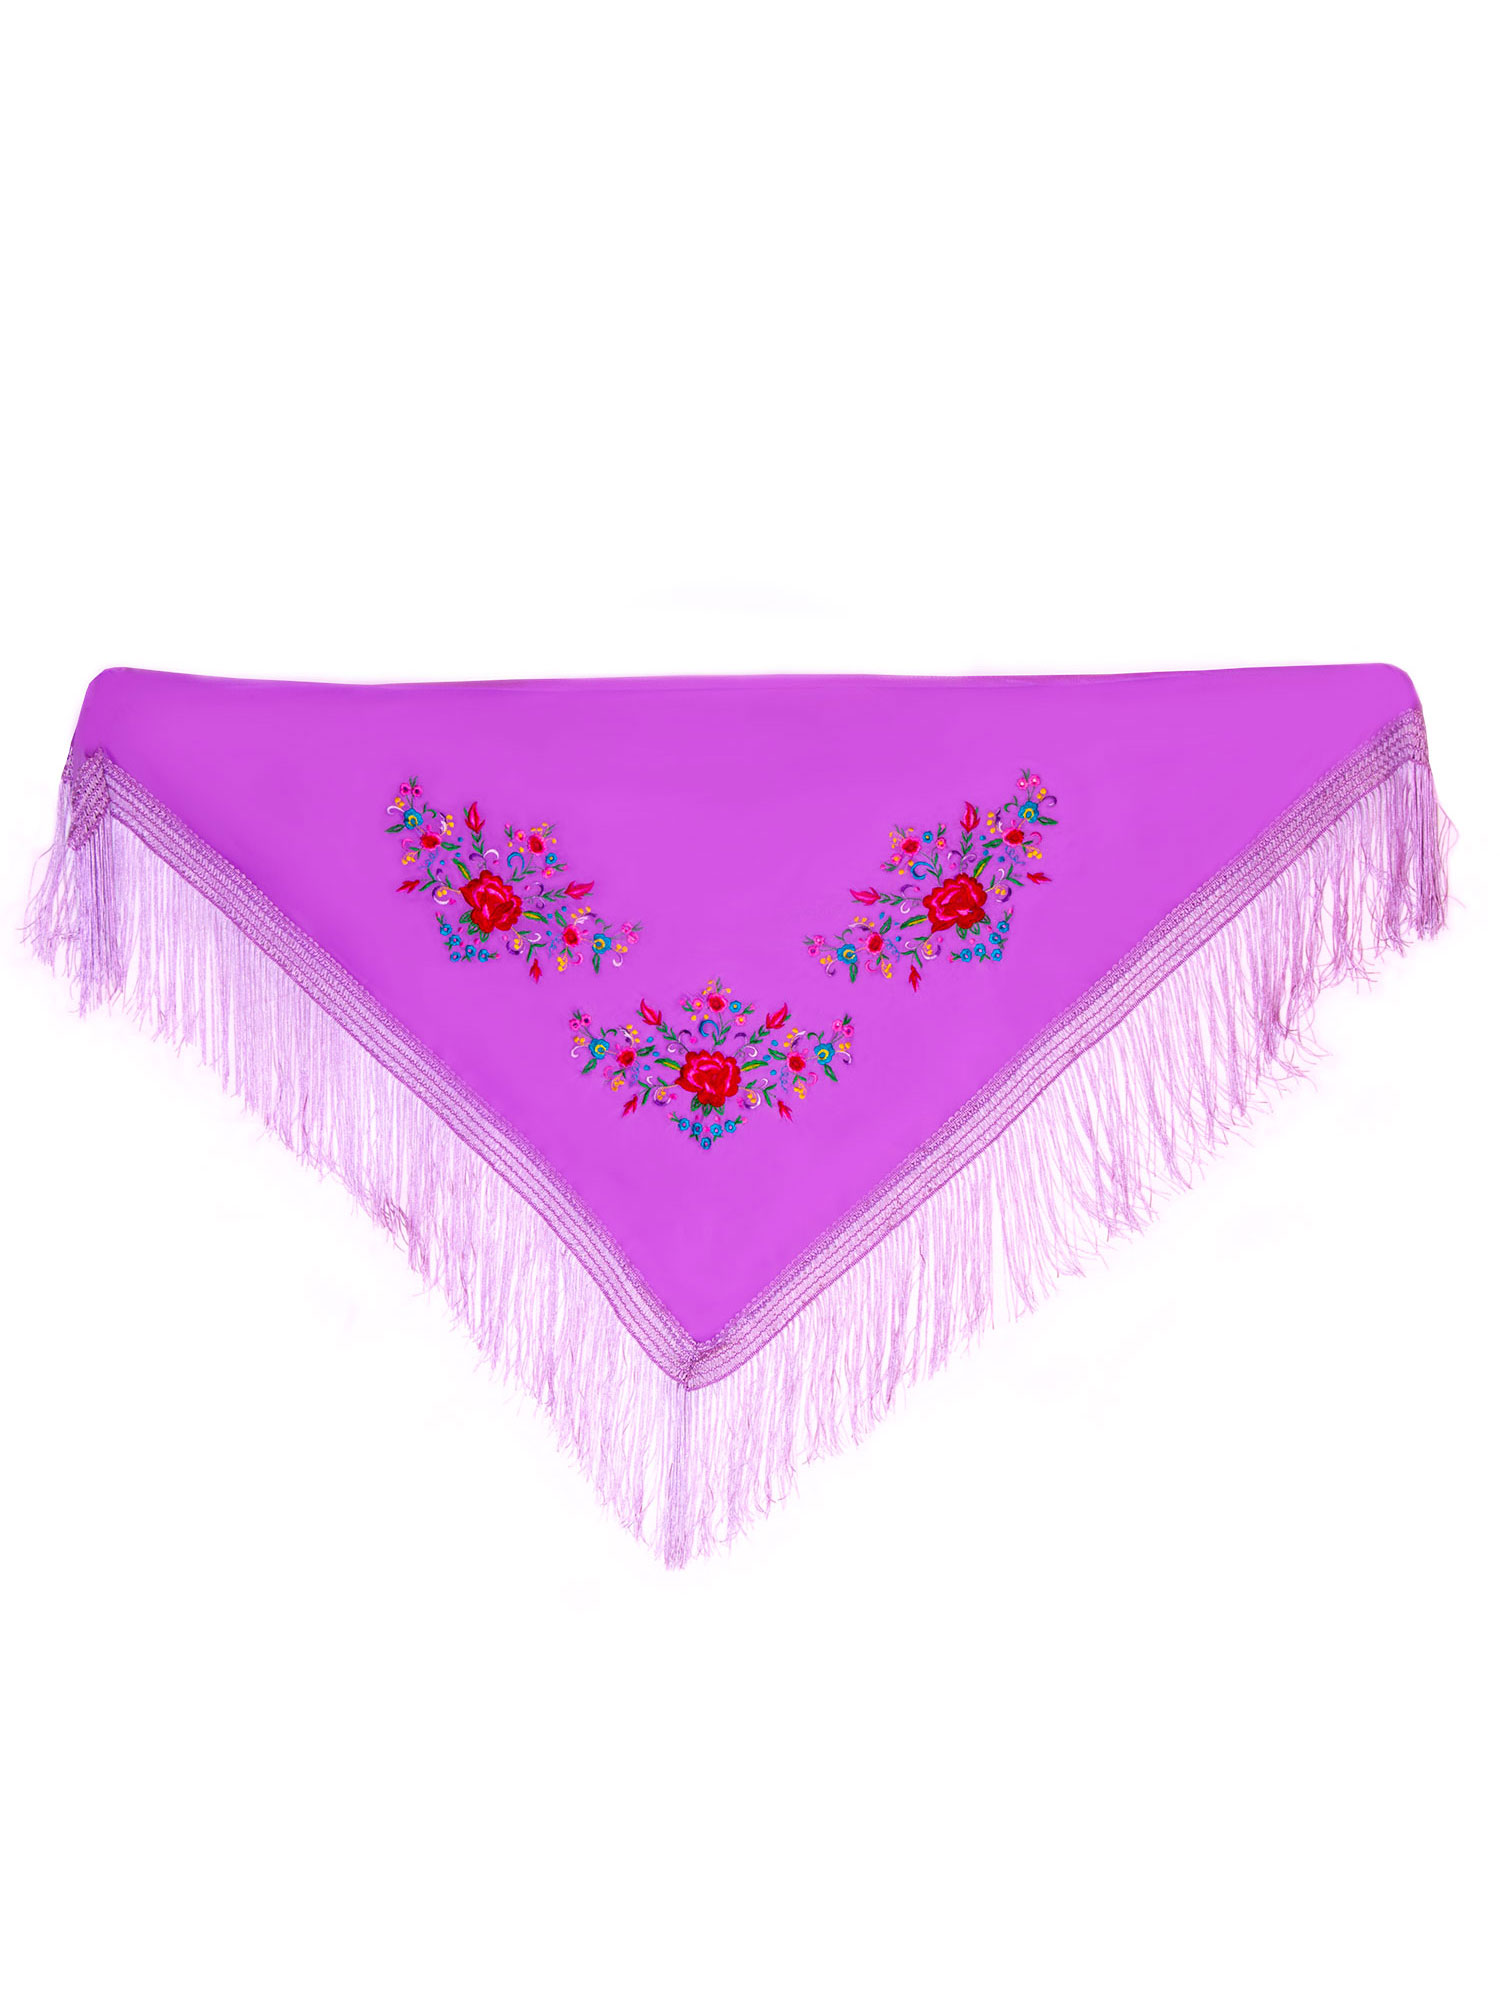 Scarf 150 x 70 violet embroidered